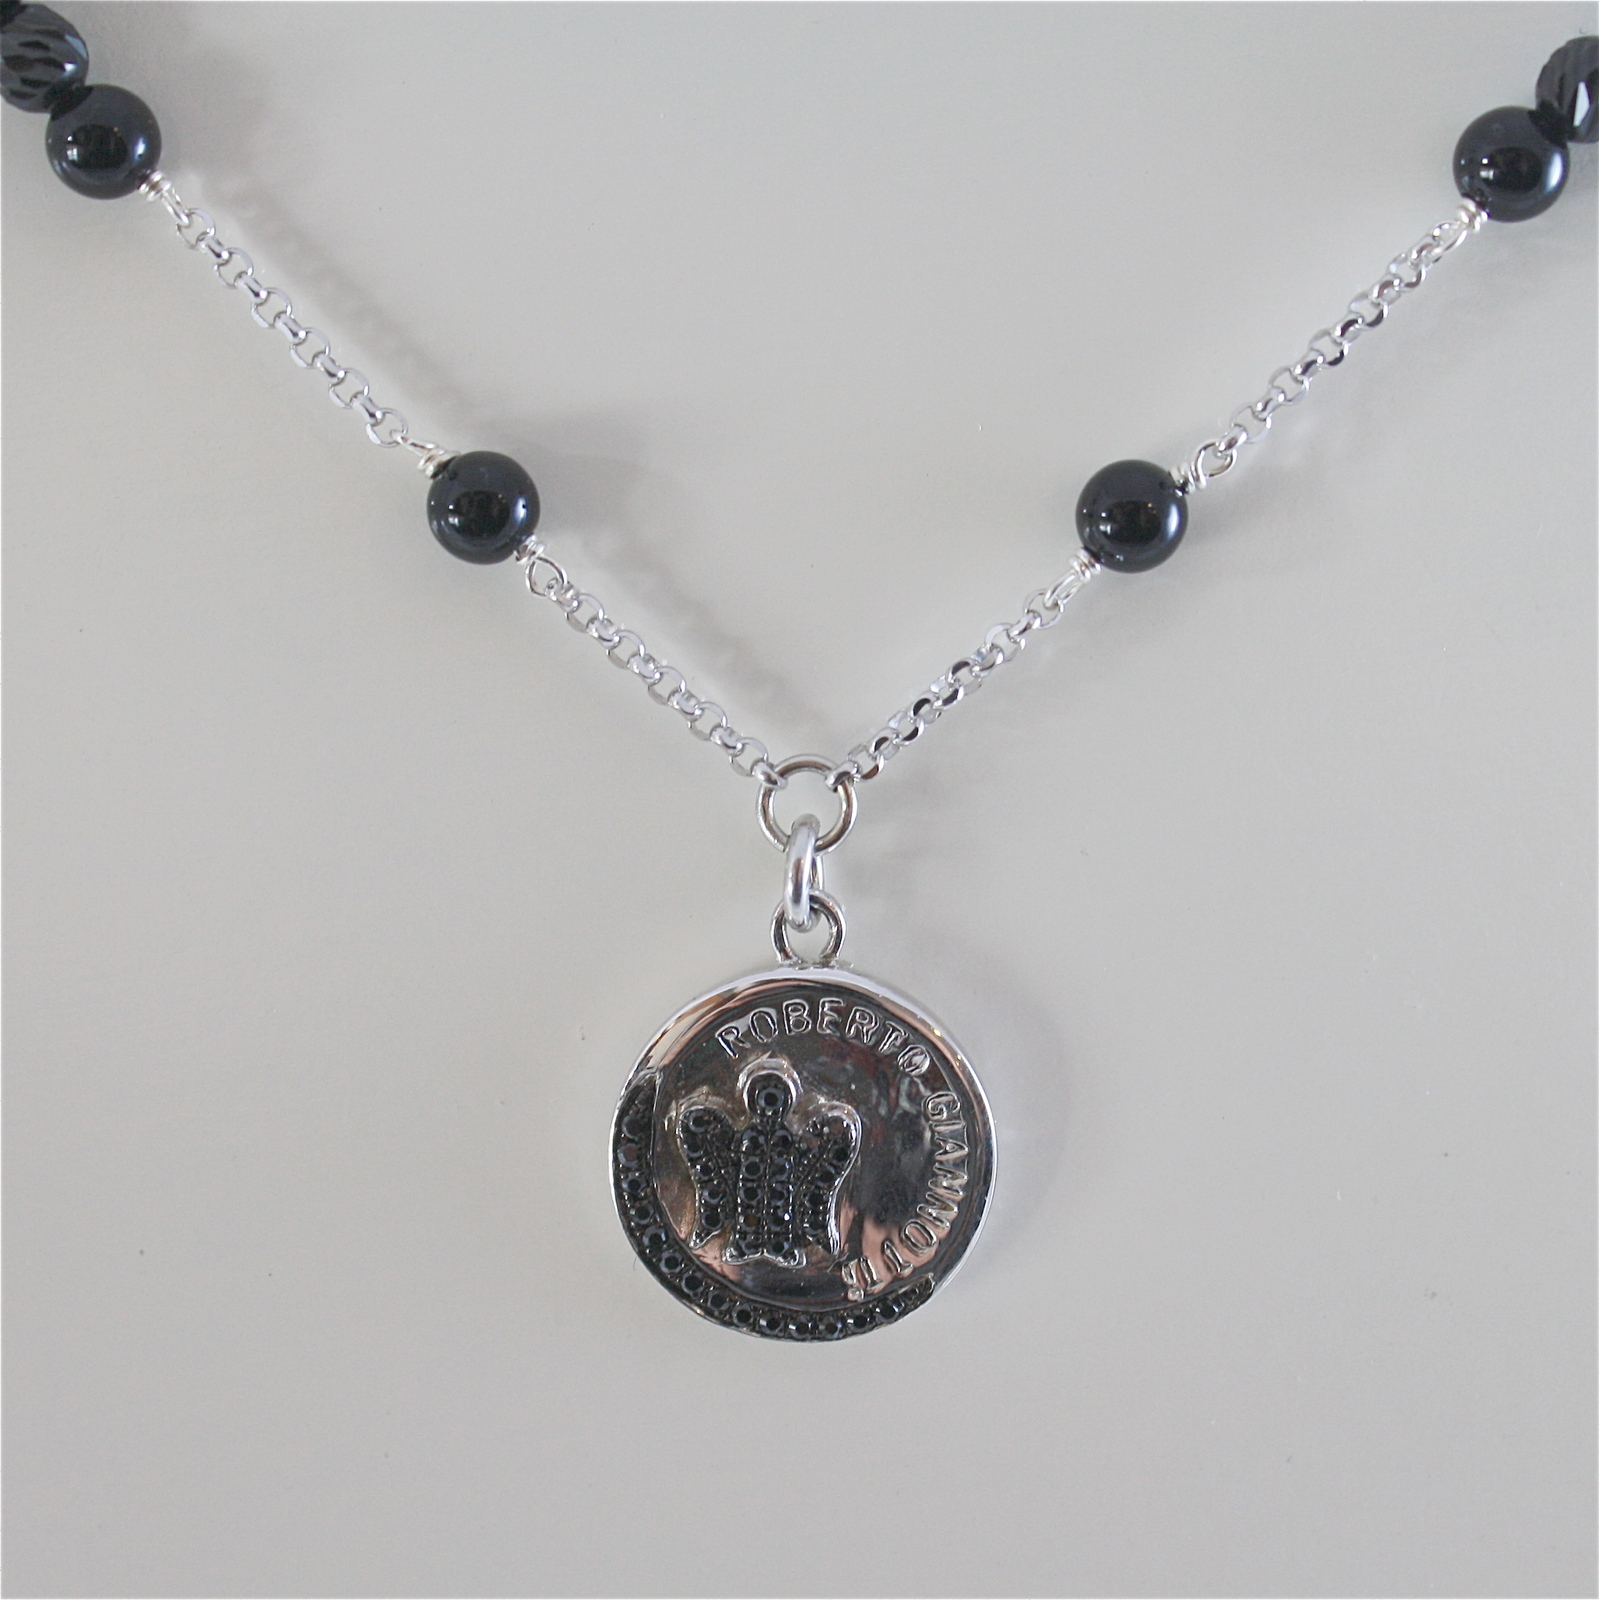 925 RODIUM SILVER NECKLACE WITH BLACK ONYX AND ANGEL PENDANT, MADE IN ITALY